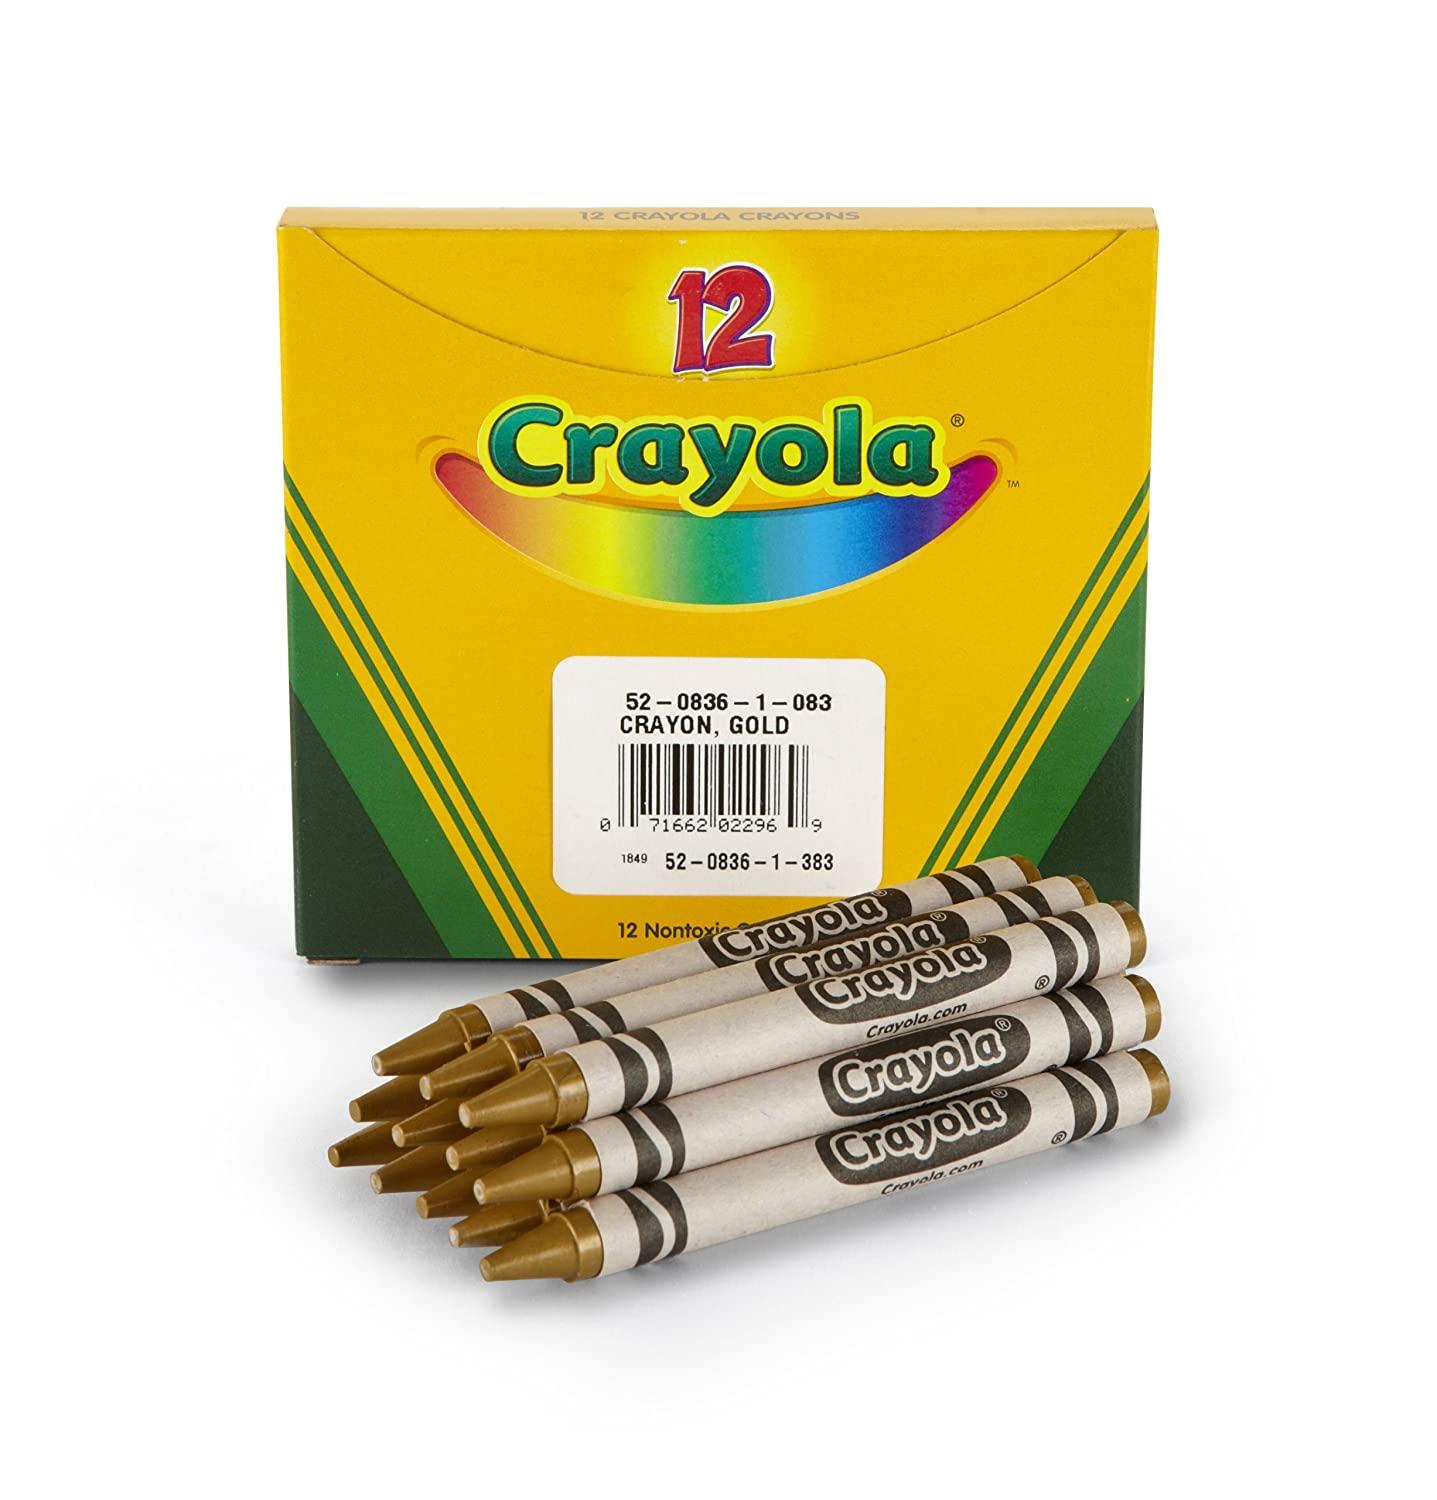 Crayola Bulk Crayons Gold, Pack of 12 Binney & Smith 52-0836-083